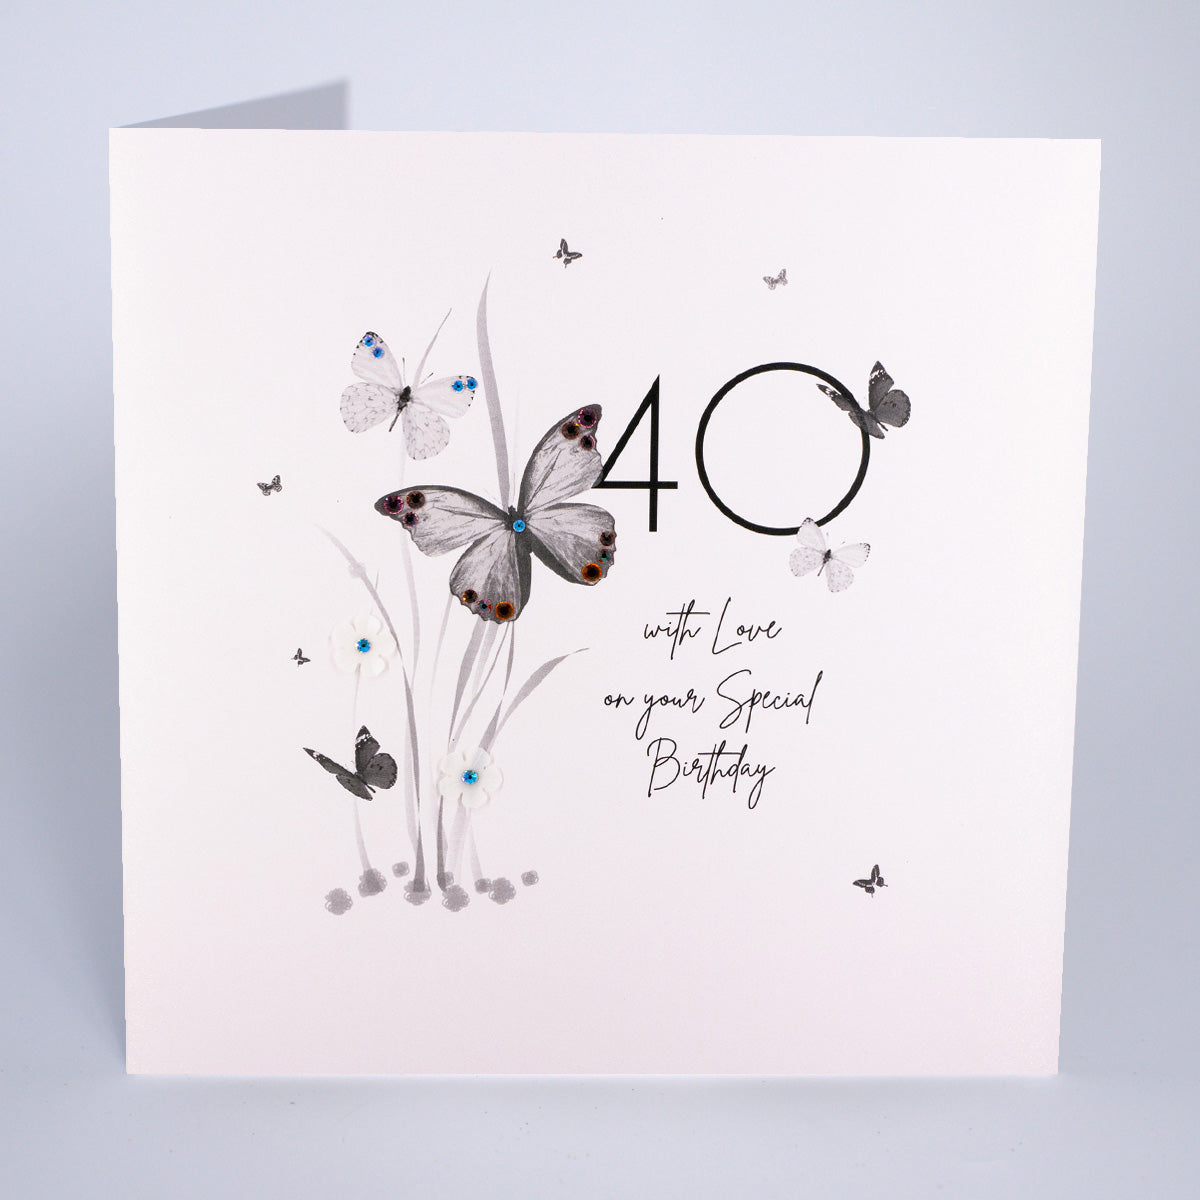 40 - With Love on your Special Birthday